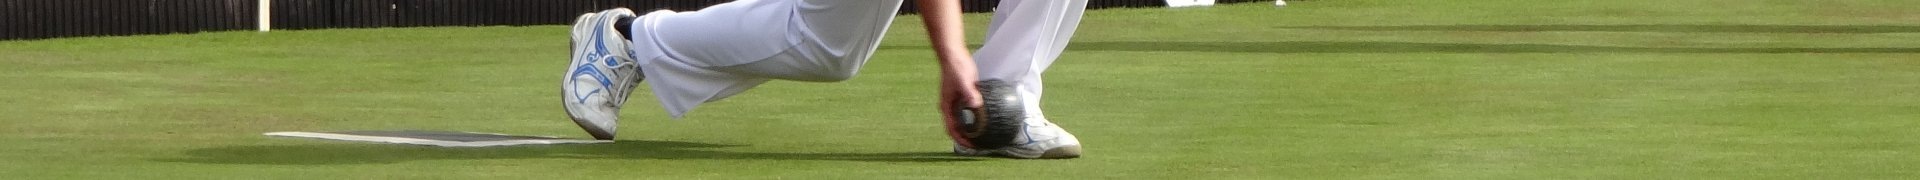 Wiltshire Ladies head for Johns Trophy Semis at Leamington.